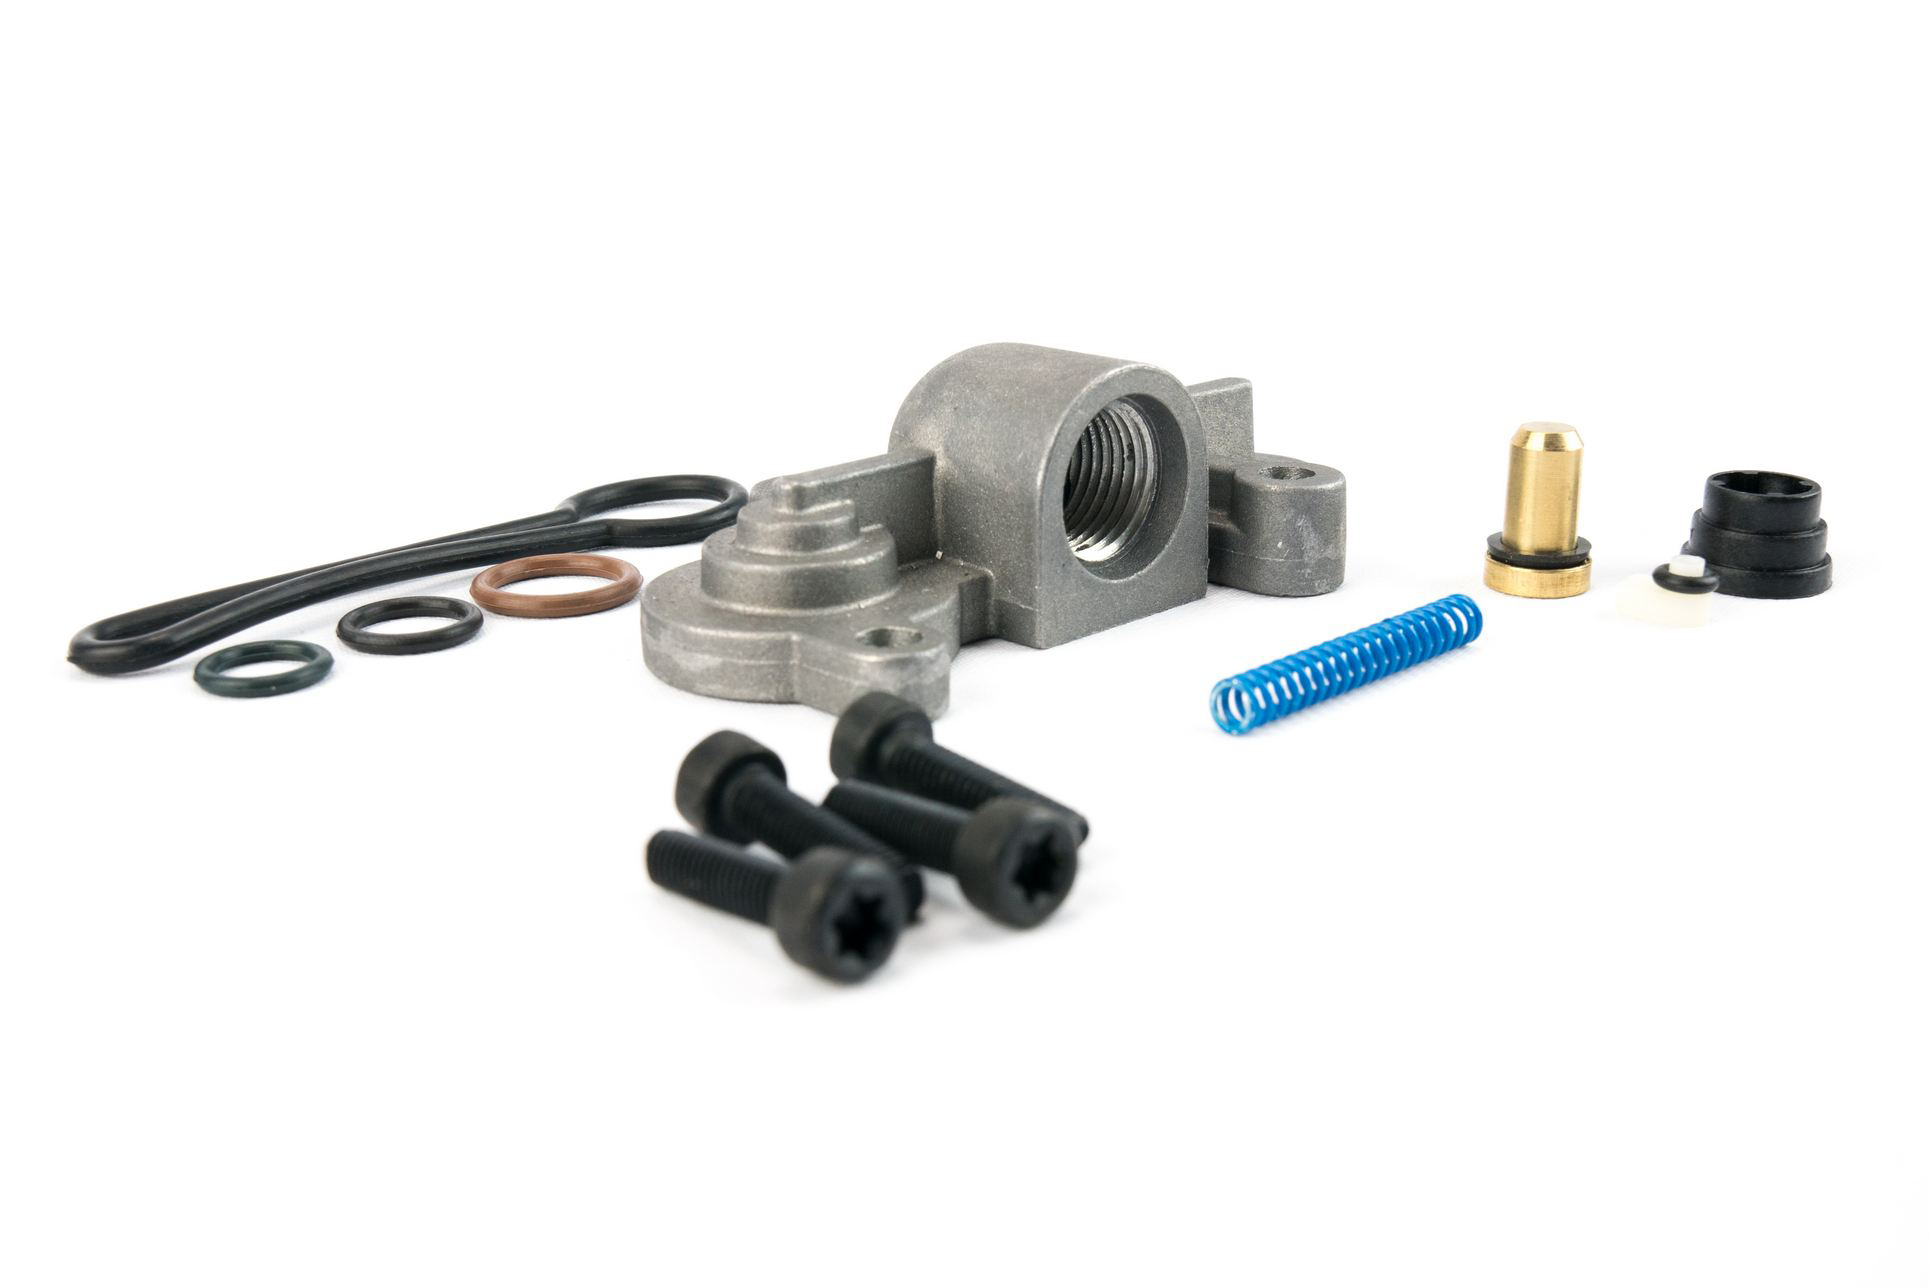 6.0 Blue Spring Kit Upgrade - Fuel Regulator Kit - Ford Blue Spring Kit 6.0 Powerstroke F250, F350, F450, F550 2003, 2004, 2005, 2006, 2007 - 3C3Z-9T517-AG Image